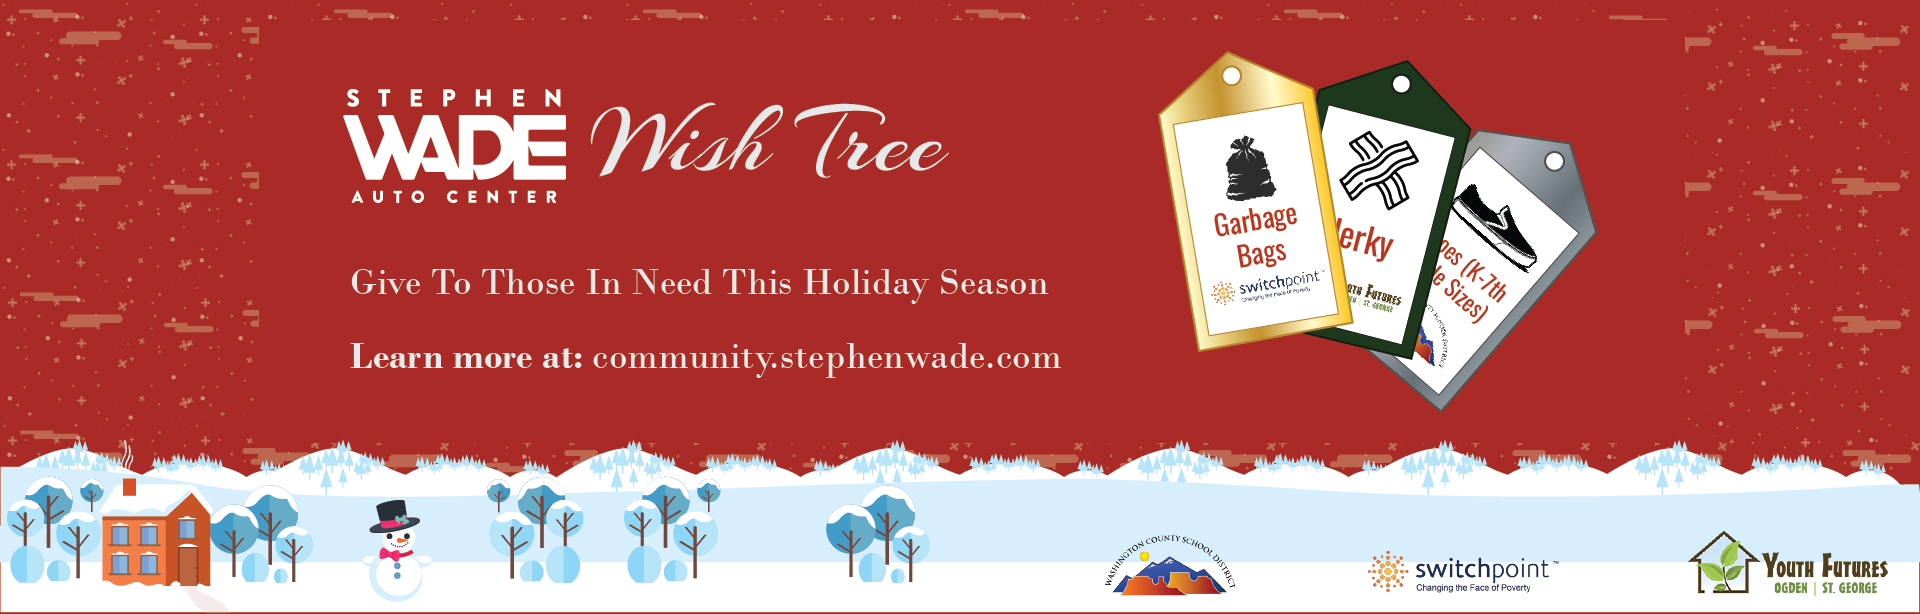 Stephen Wade Auto Center Wish Tree